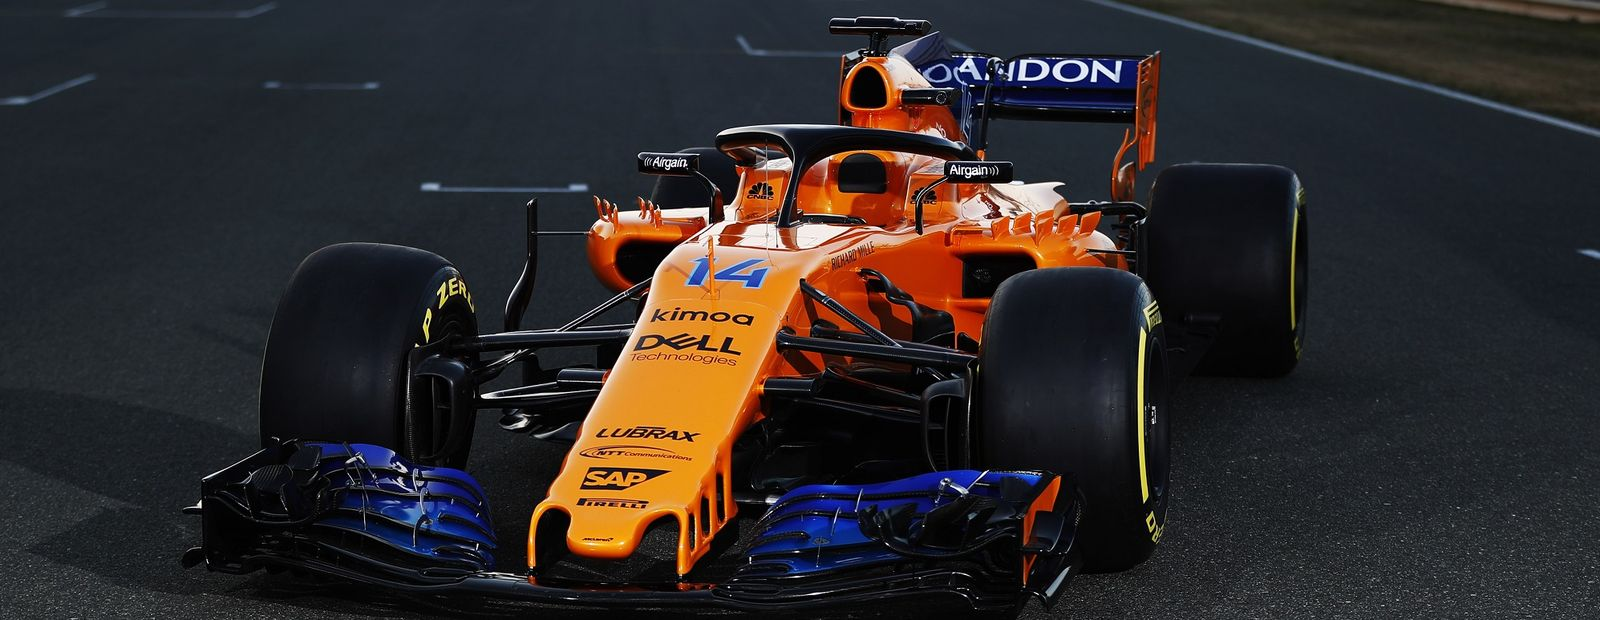 mclaren formula 1 mclaren mcl33 technical specification